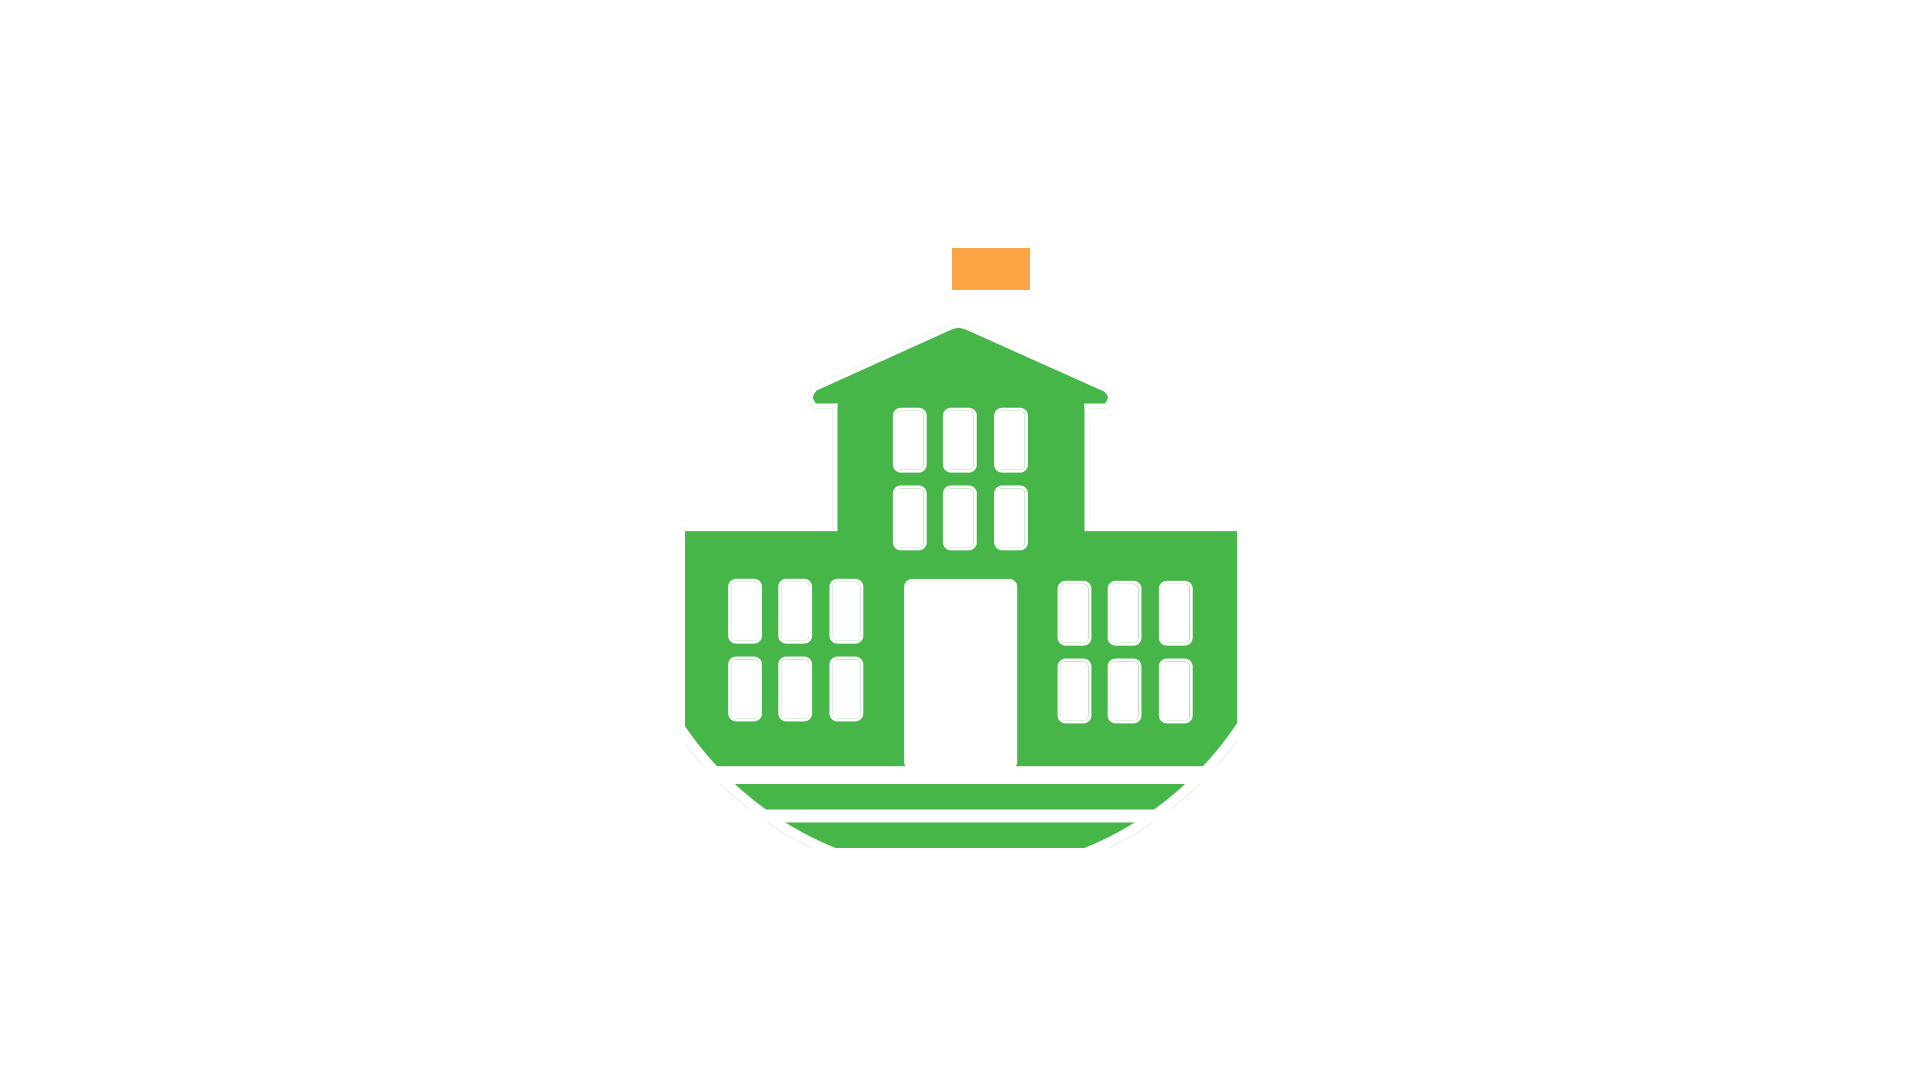 illustration of a schoolhouse with arrows radiating outwards from it